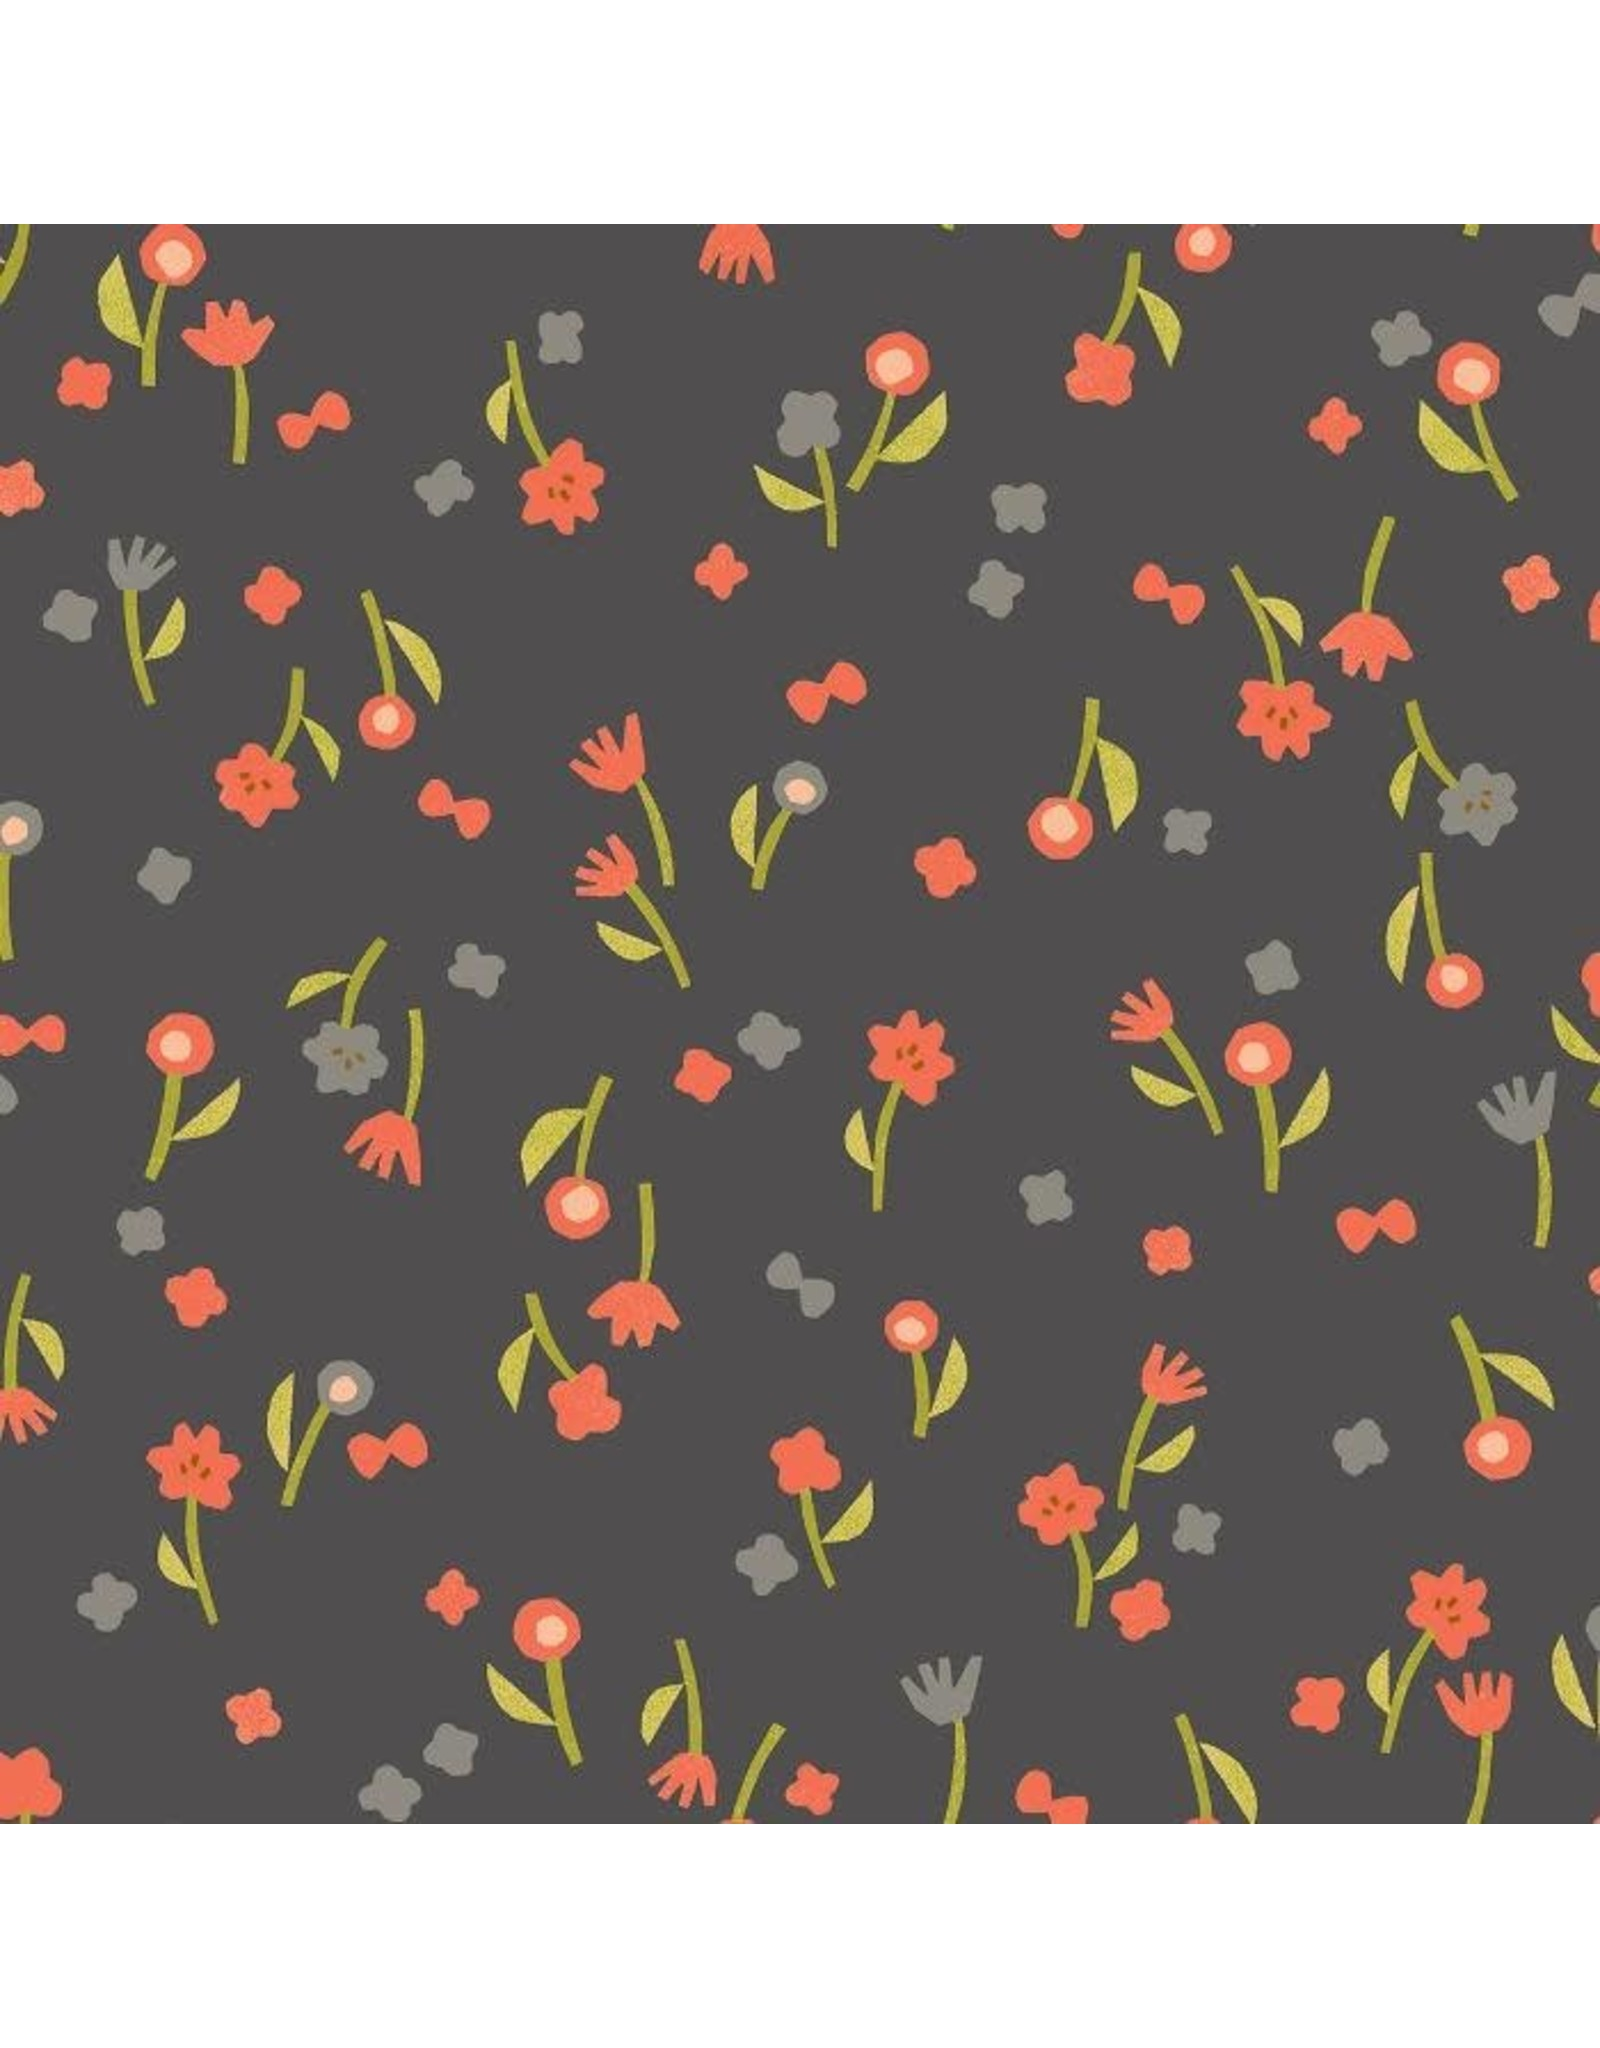 Cotton + Steel Neko and Tori, Flower Picking in Charcoal, Fabric Half-Yards IN103-CH3